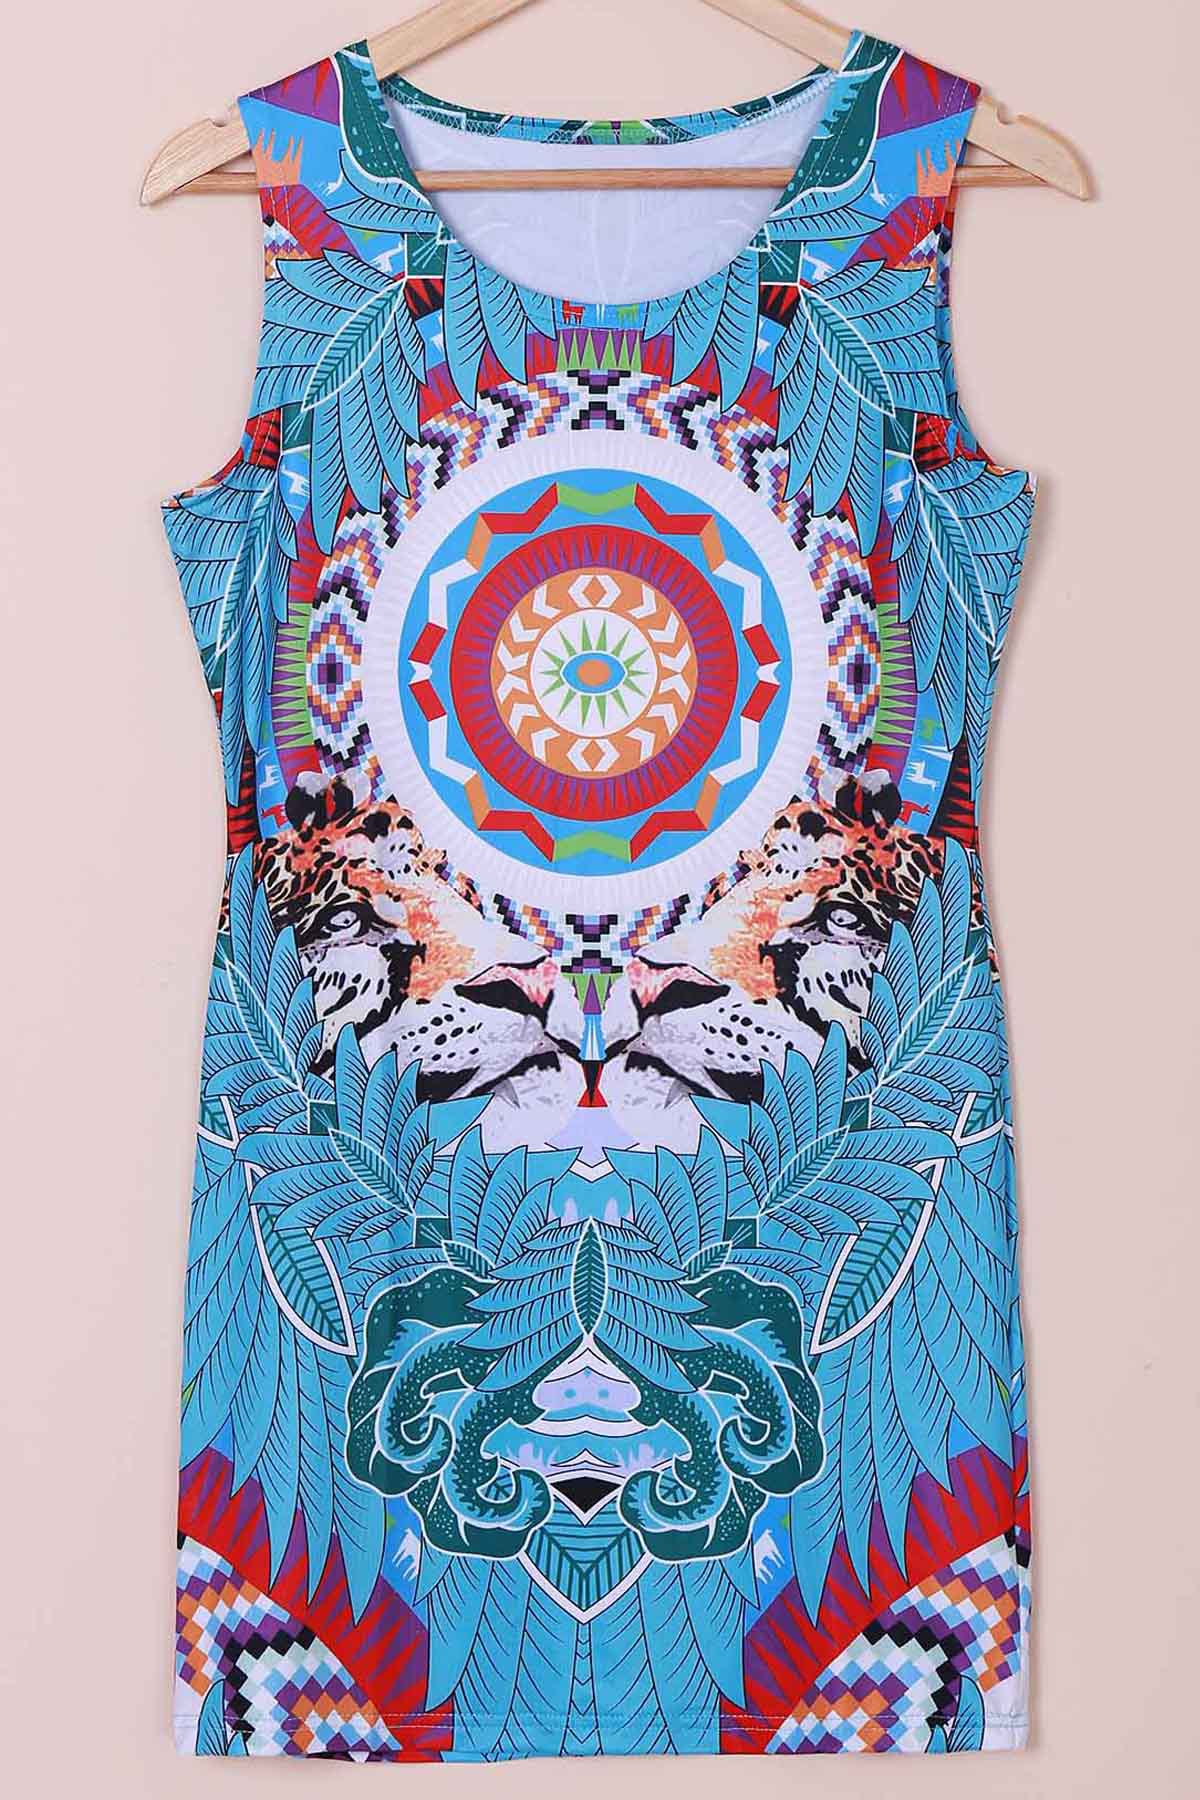 Mini Tribal Print Shift Dress - COLORMIX S